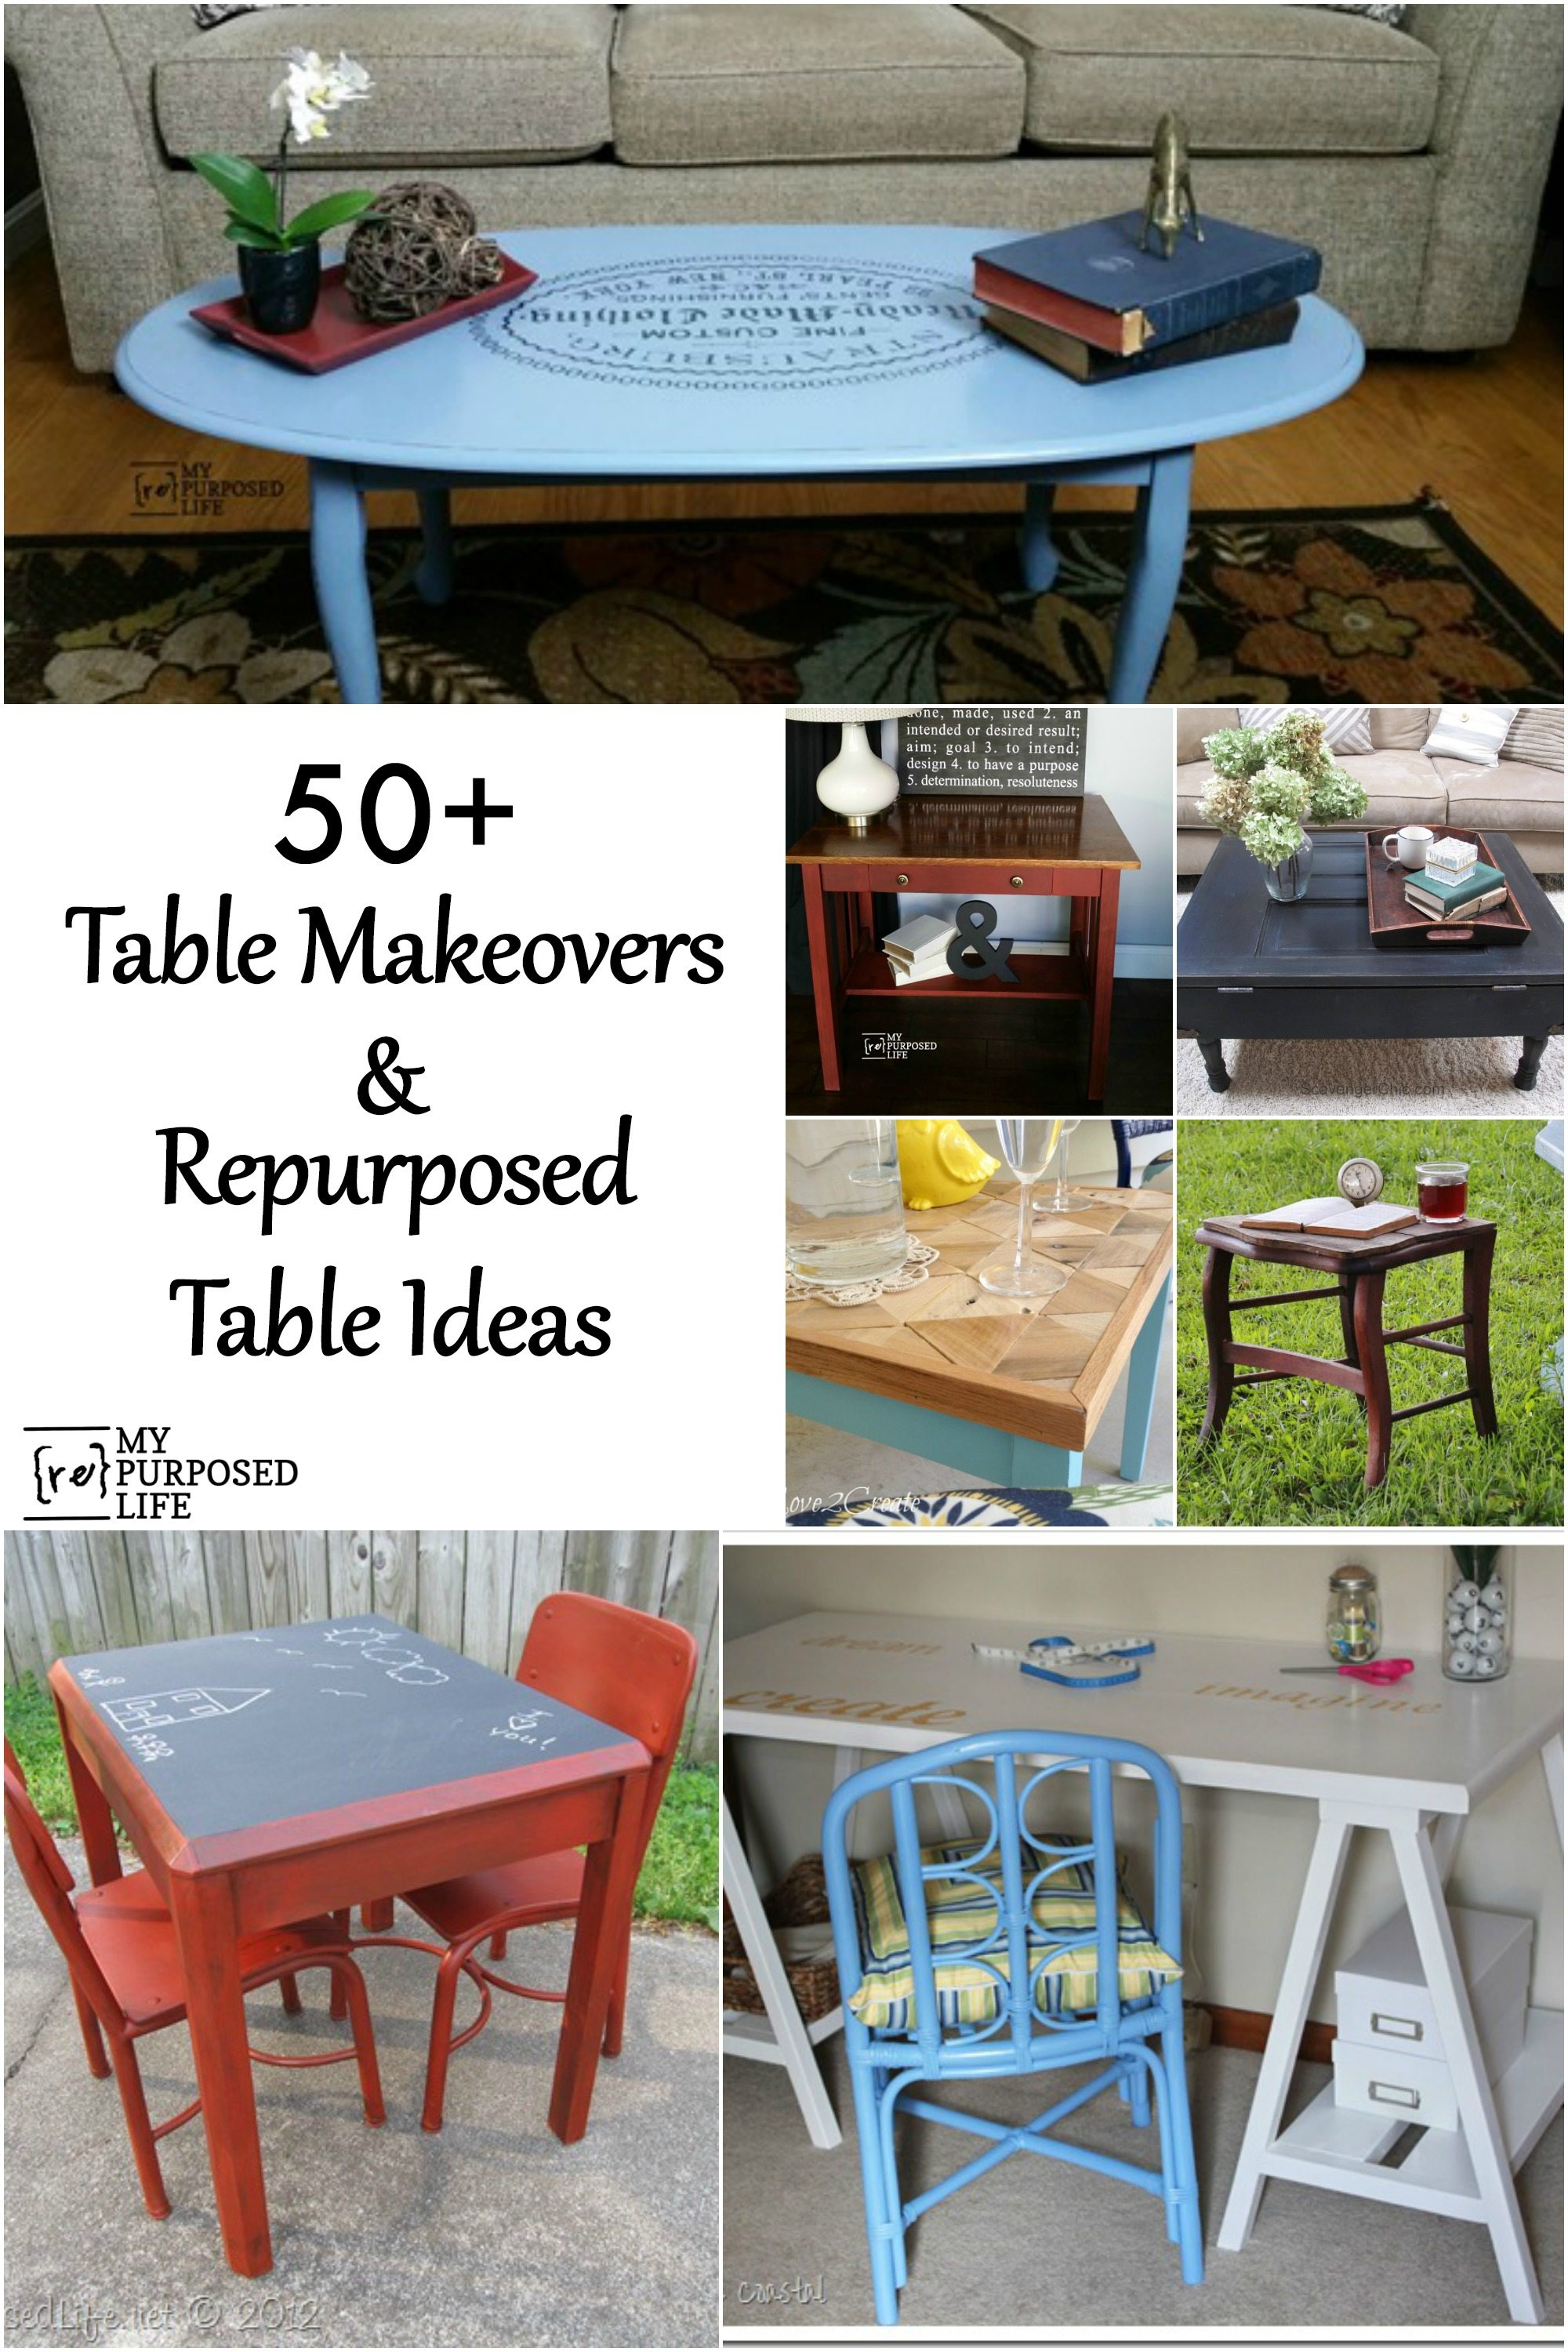 Elegant Repurposed Tables And Table Makeover Ideas MyRepurposedLife.com